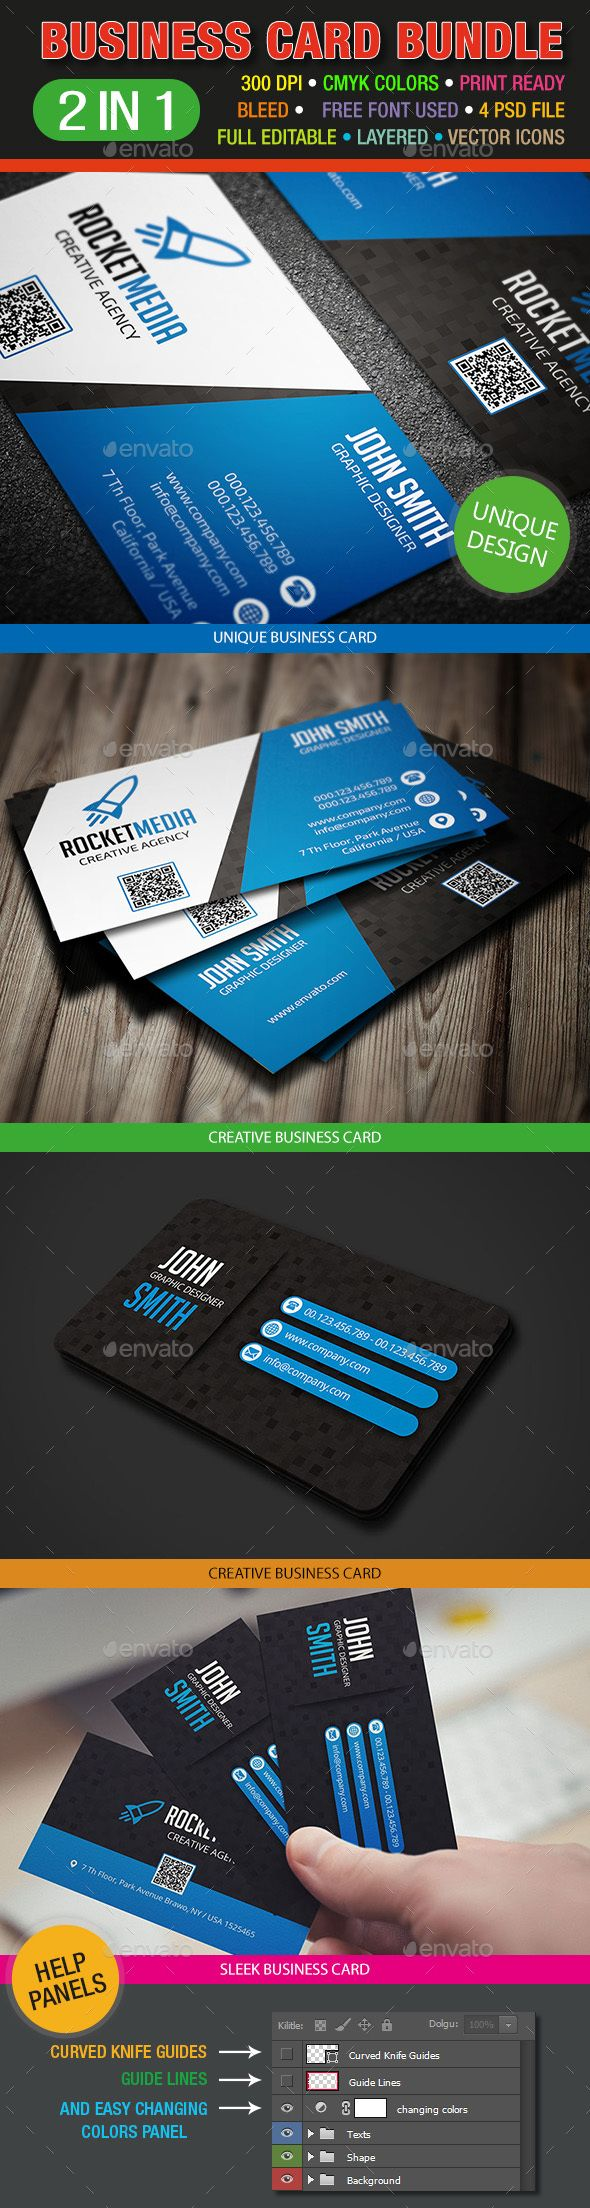 9 best creative business card images on pinterest business card 2 in 1 elegant business card bundle reheart Gallery